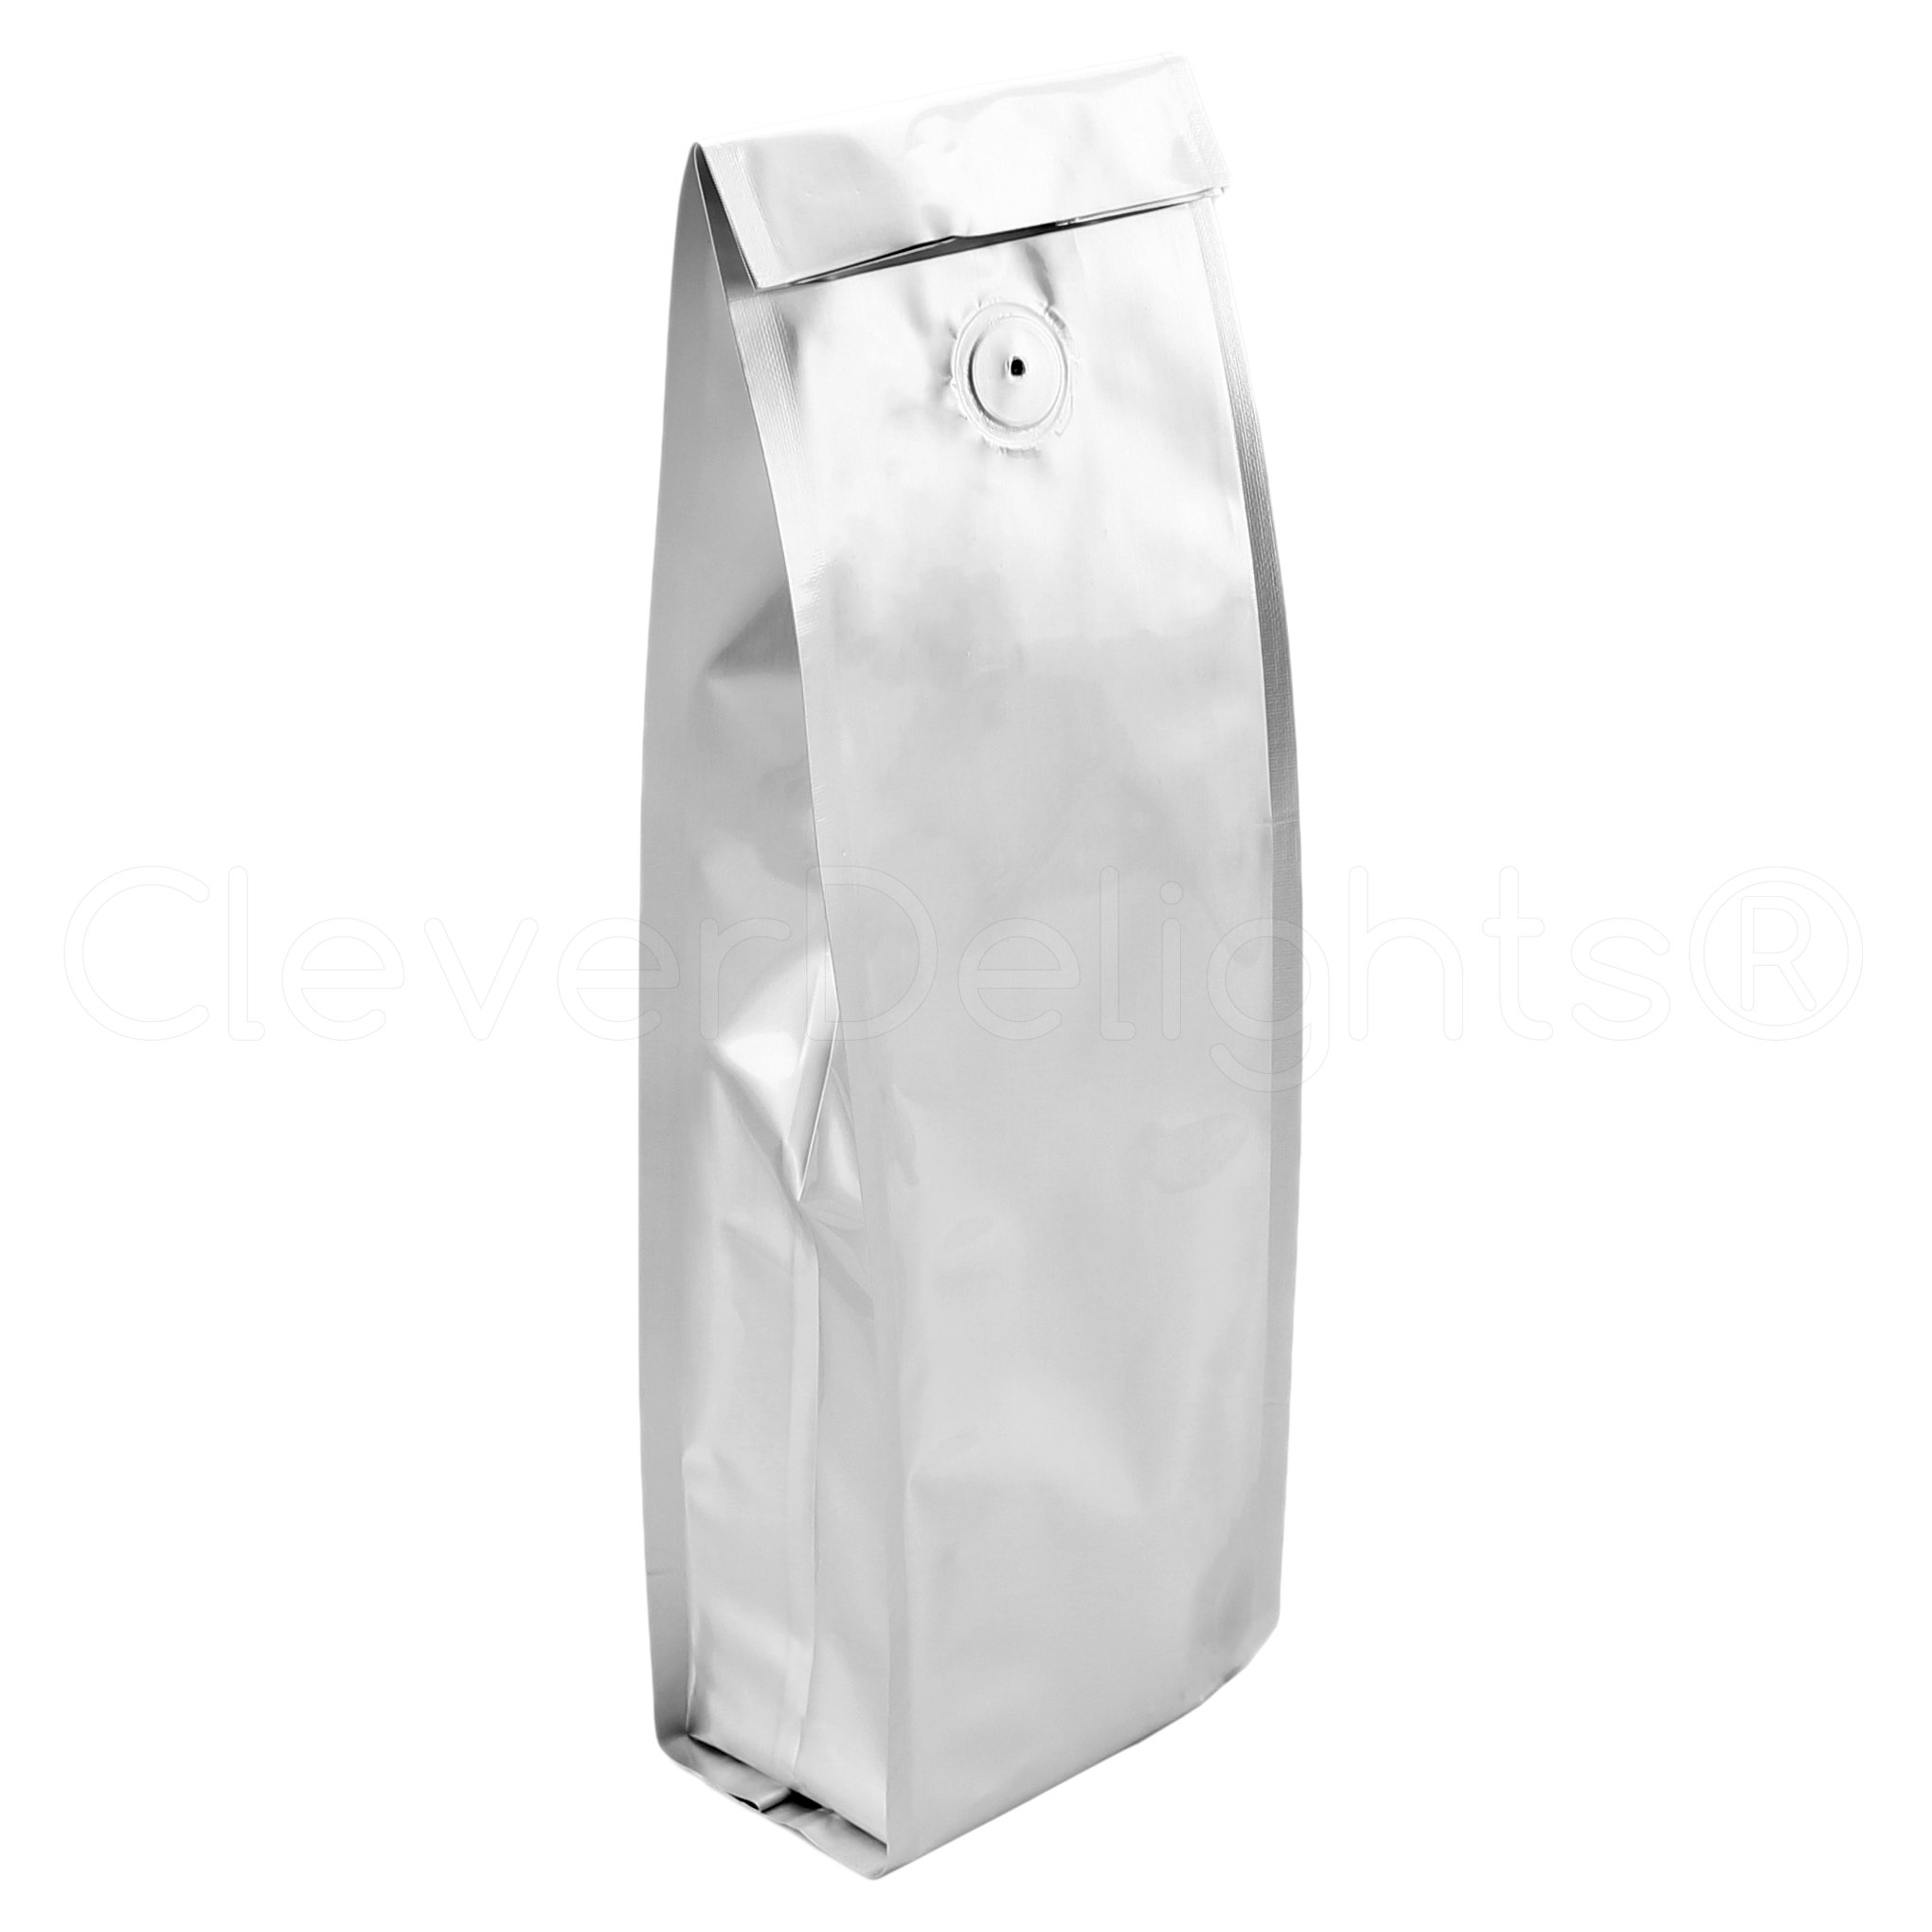 50 Pack - CleverDelights Silver Coffee Bags with Degassing Valve - Side Gusset - 1Lb (16oz) Bags